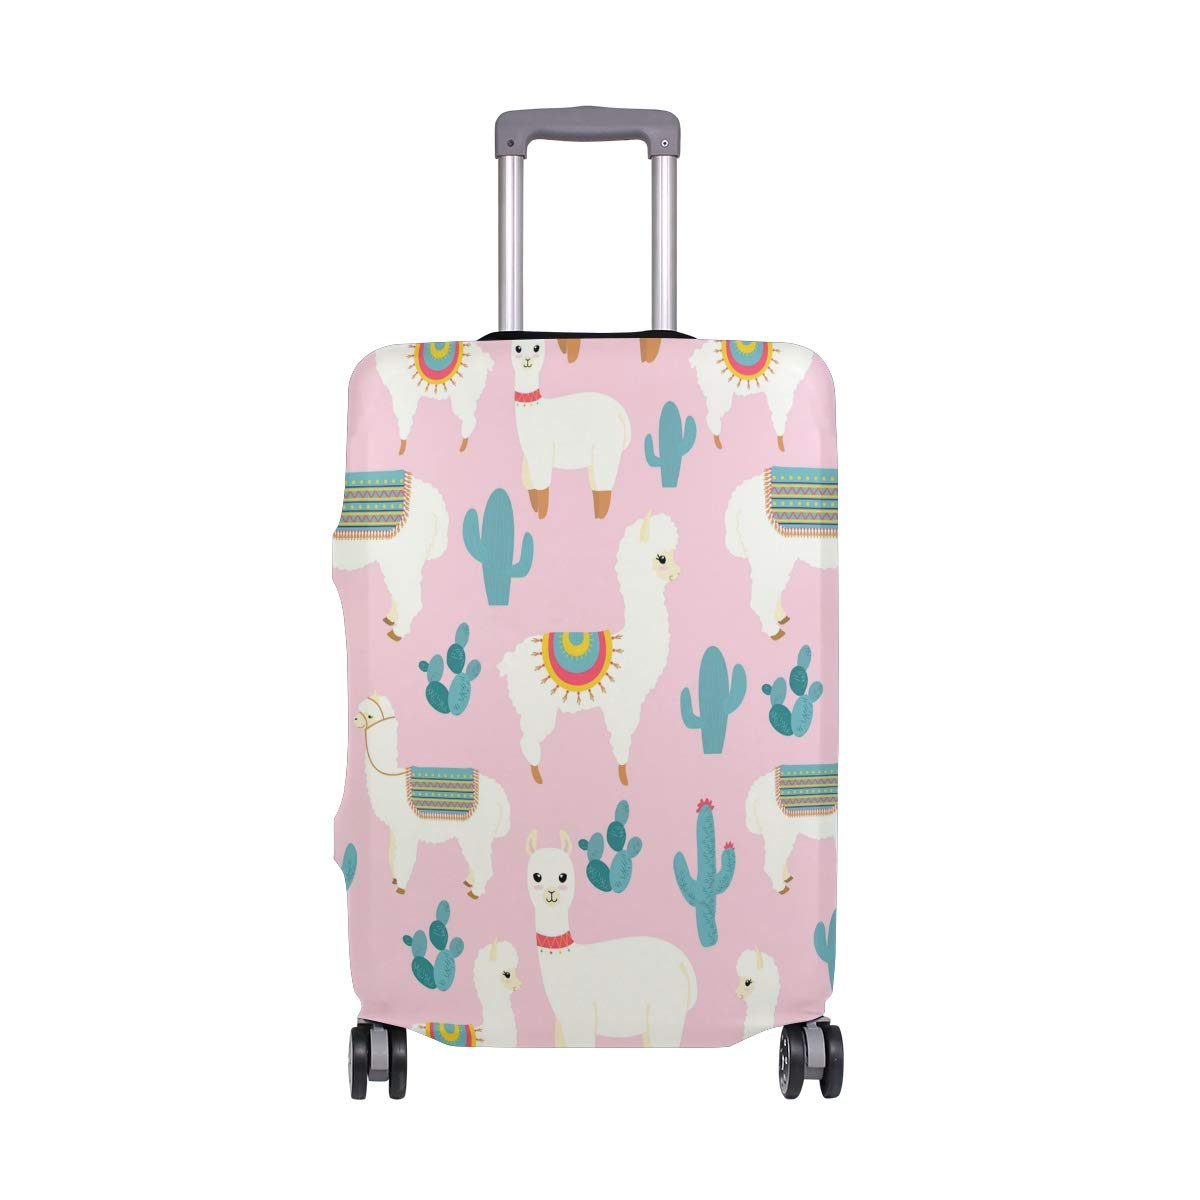 VIKKO Cute Llama Alpaca With Cactus Travel Luggage Cover Suitcase Cover Protector Travel Case Bag Protector Elastic Luggage Case Cover Fits 29-32 Inch Luggage for Kids Men Women Travel